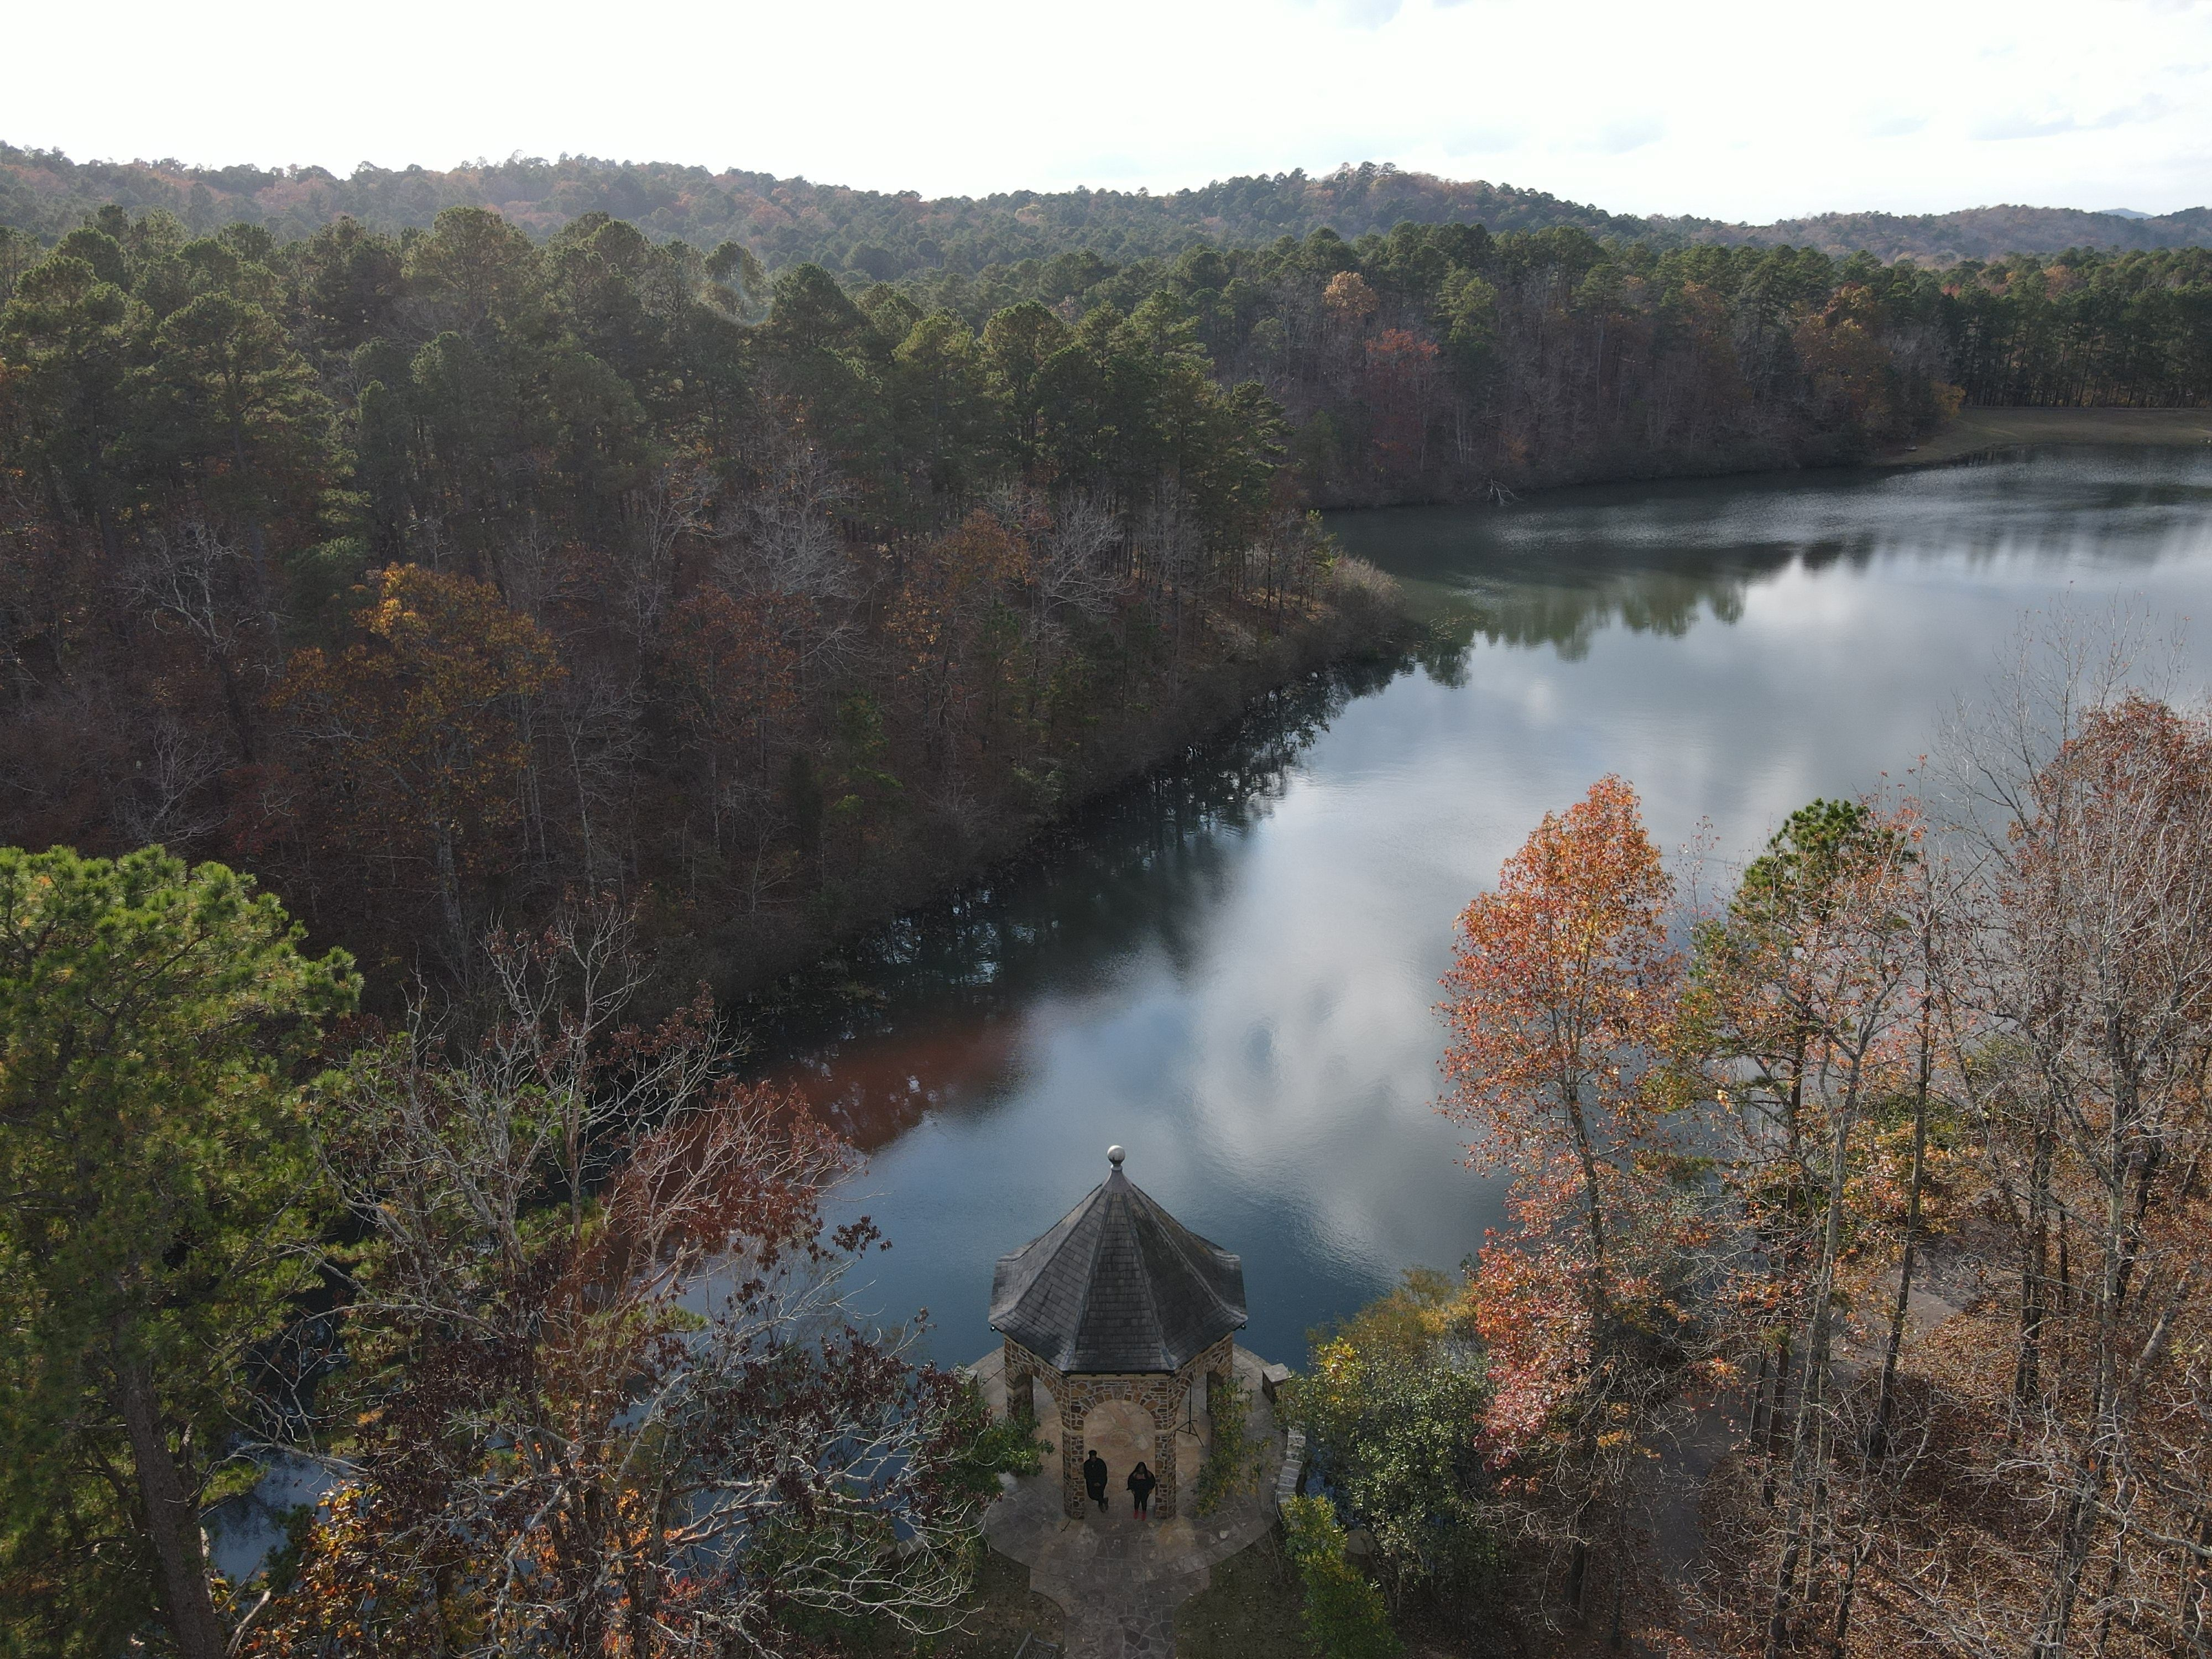 An aerial image of the Butler Gazebo and Swan Lake at Wildwood Park for the Arts during the Autumn